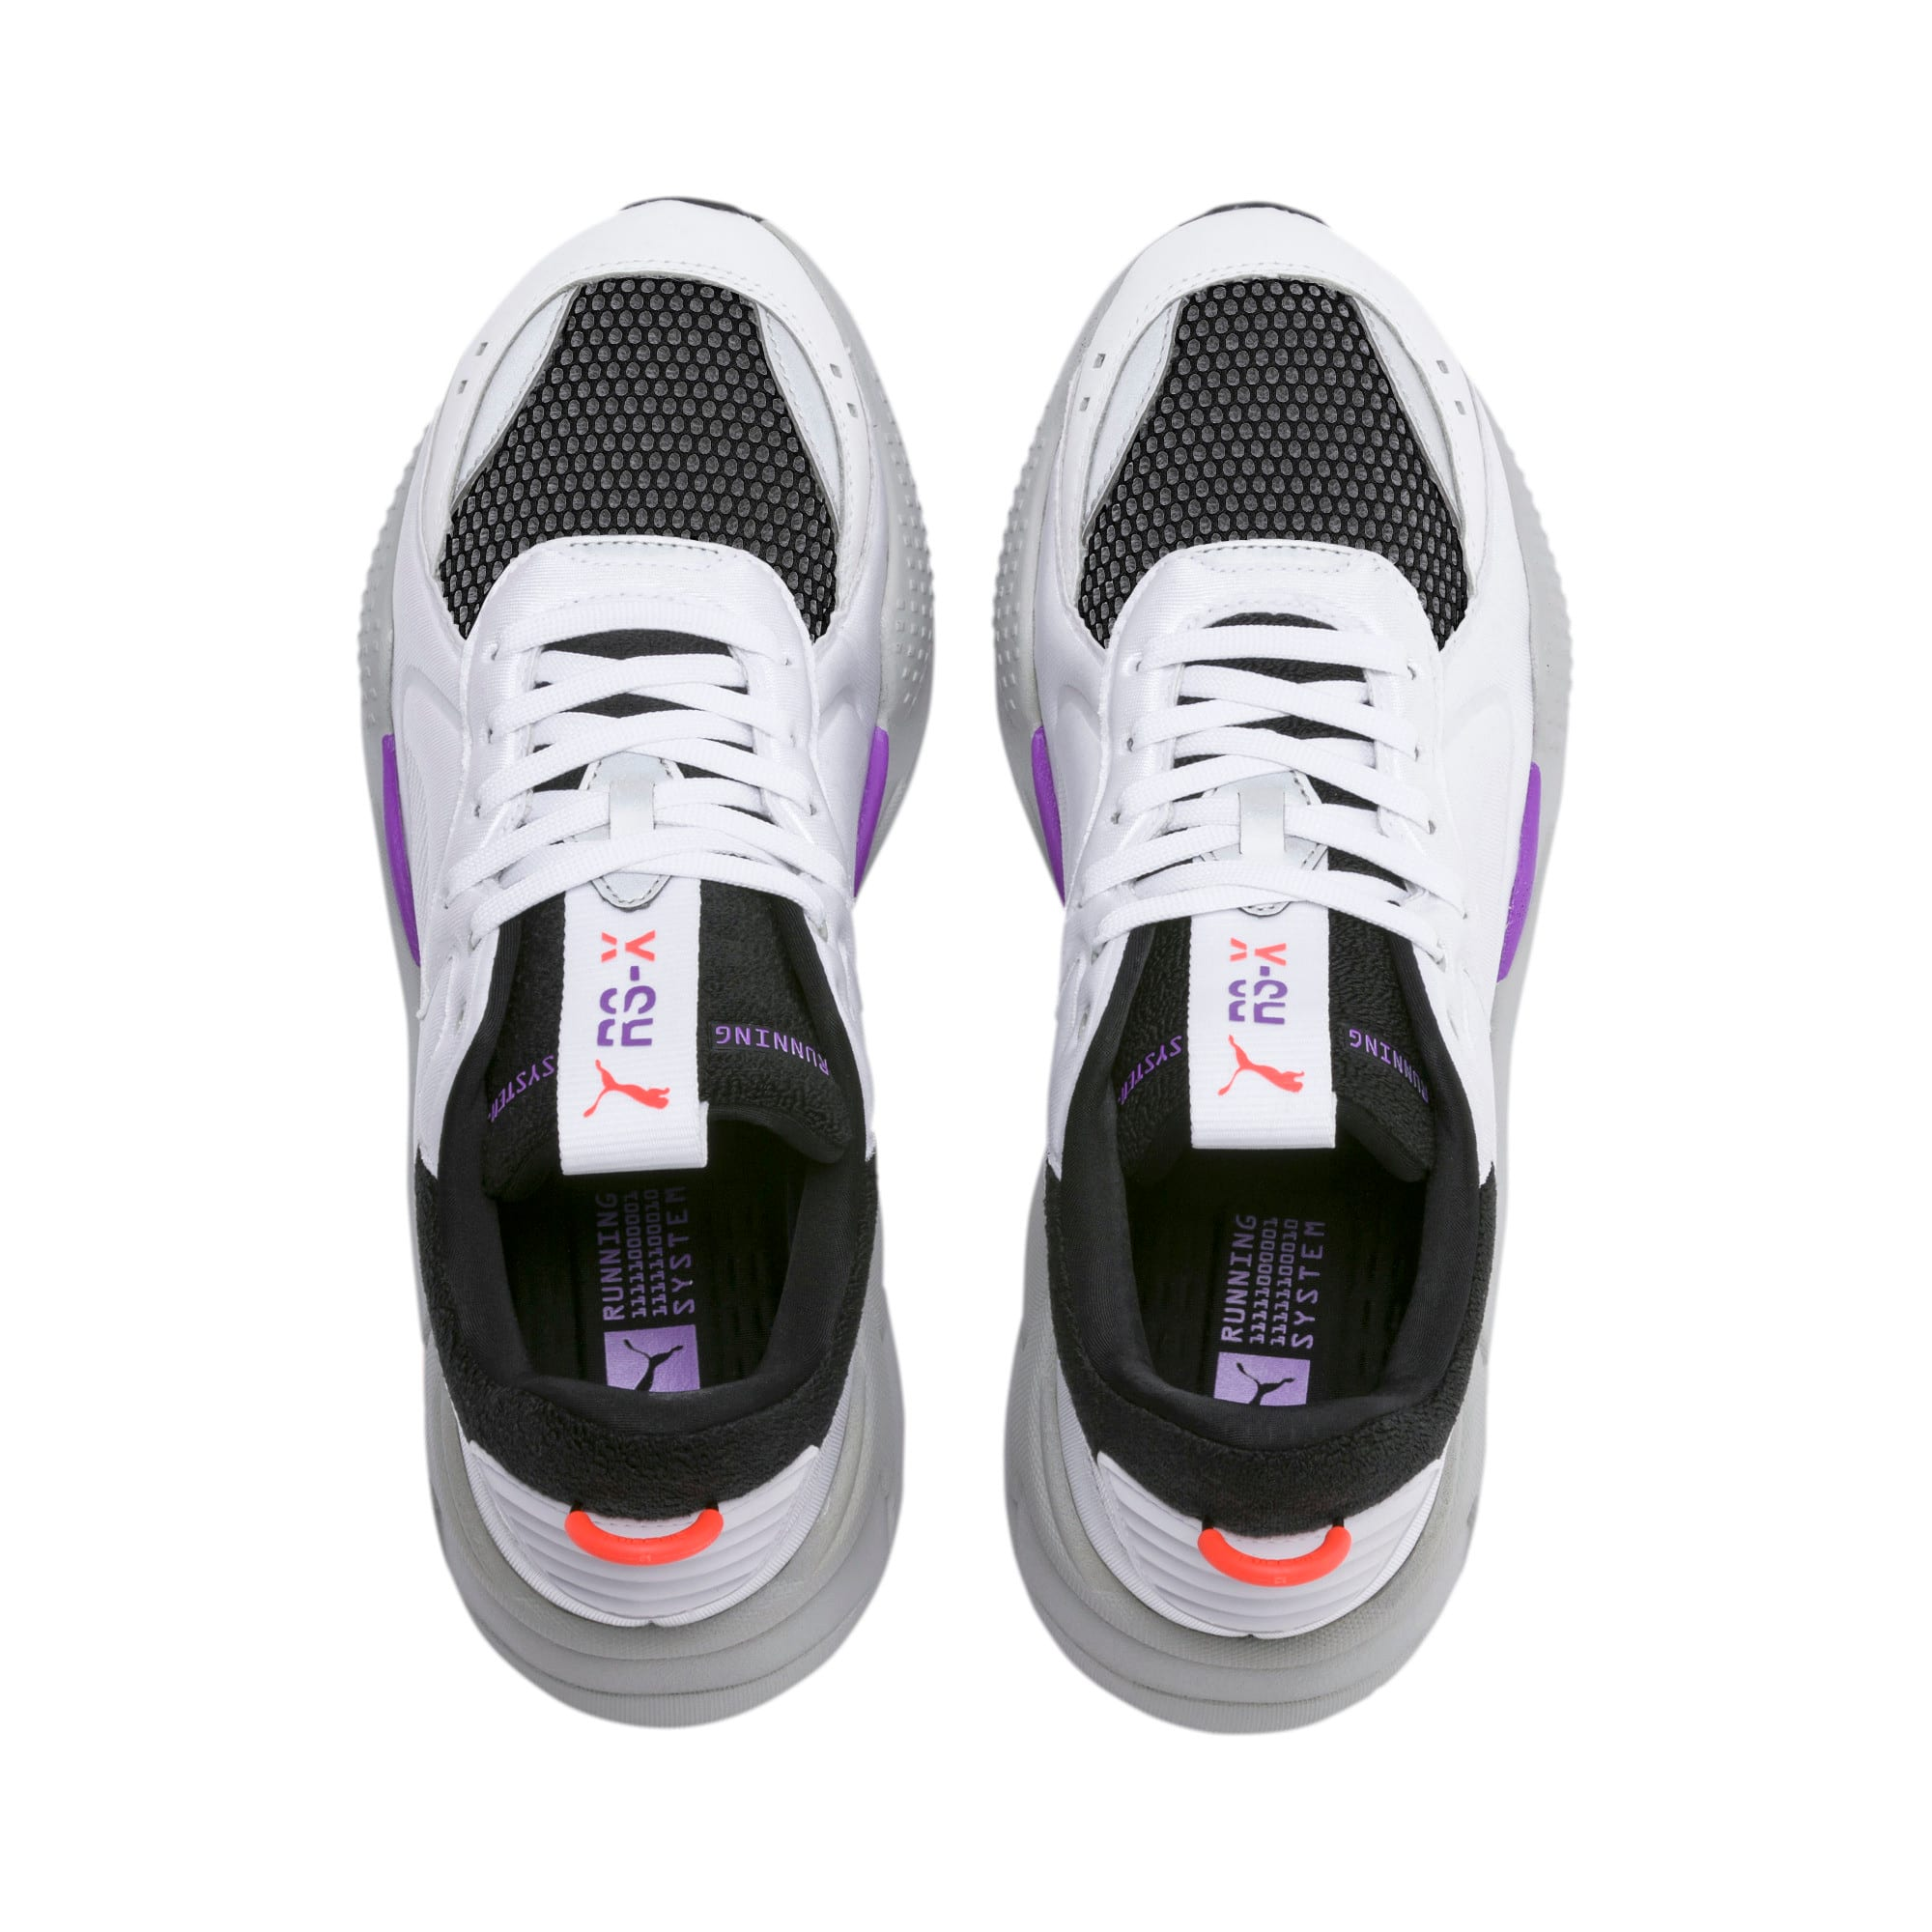 RS-X Softcase Sneakers, Puma White-Puma Black, large